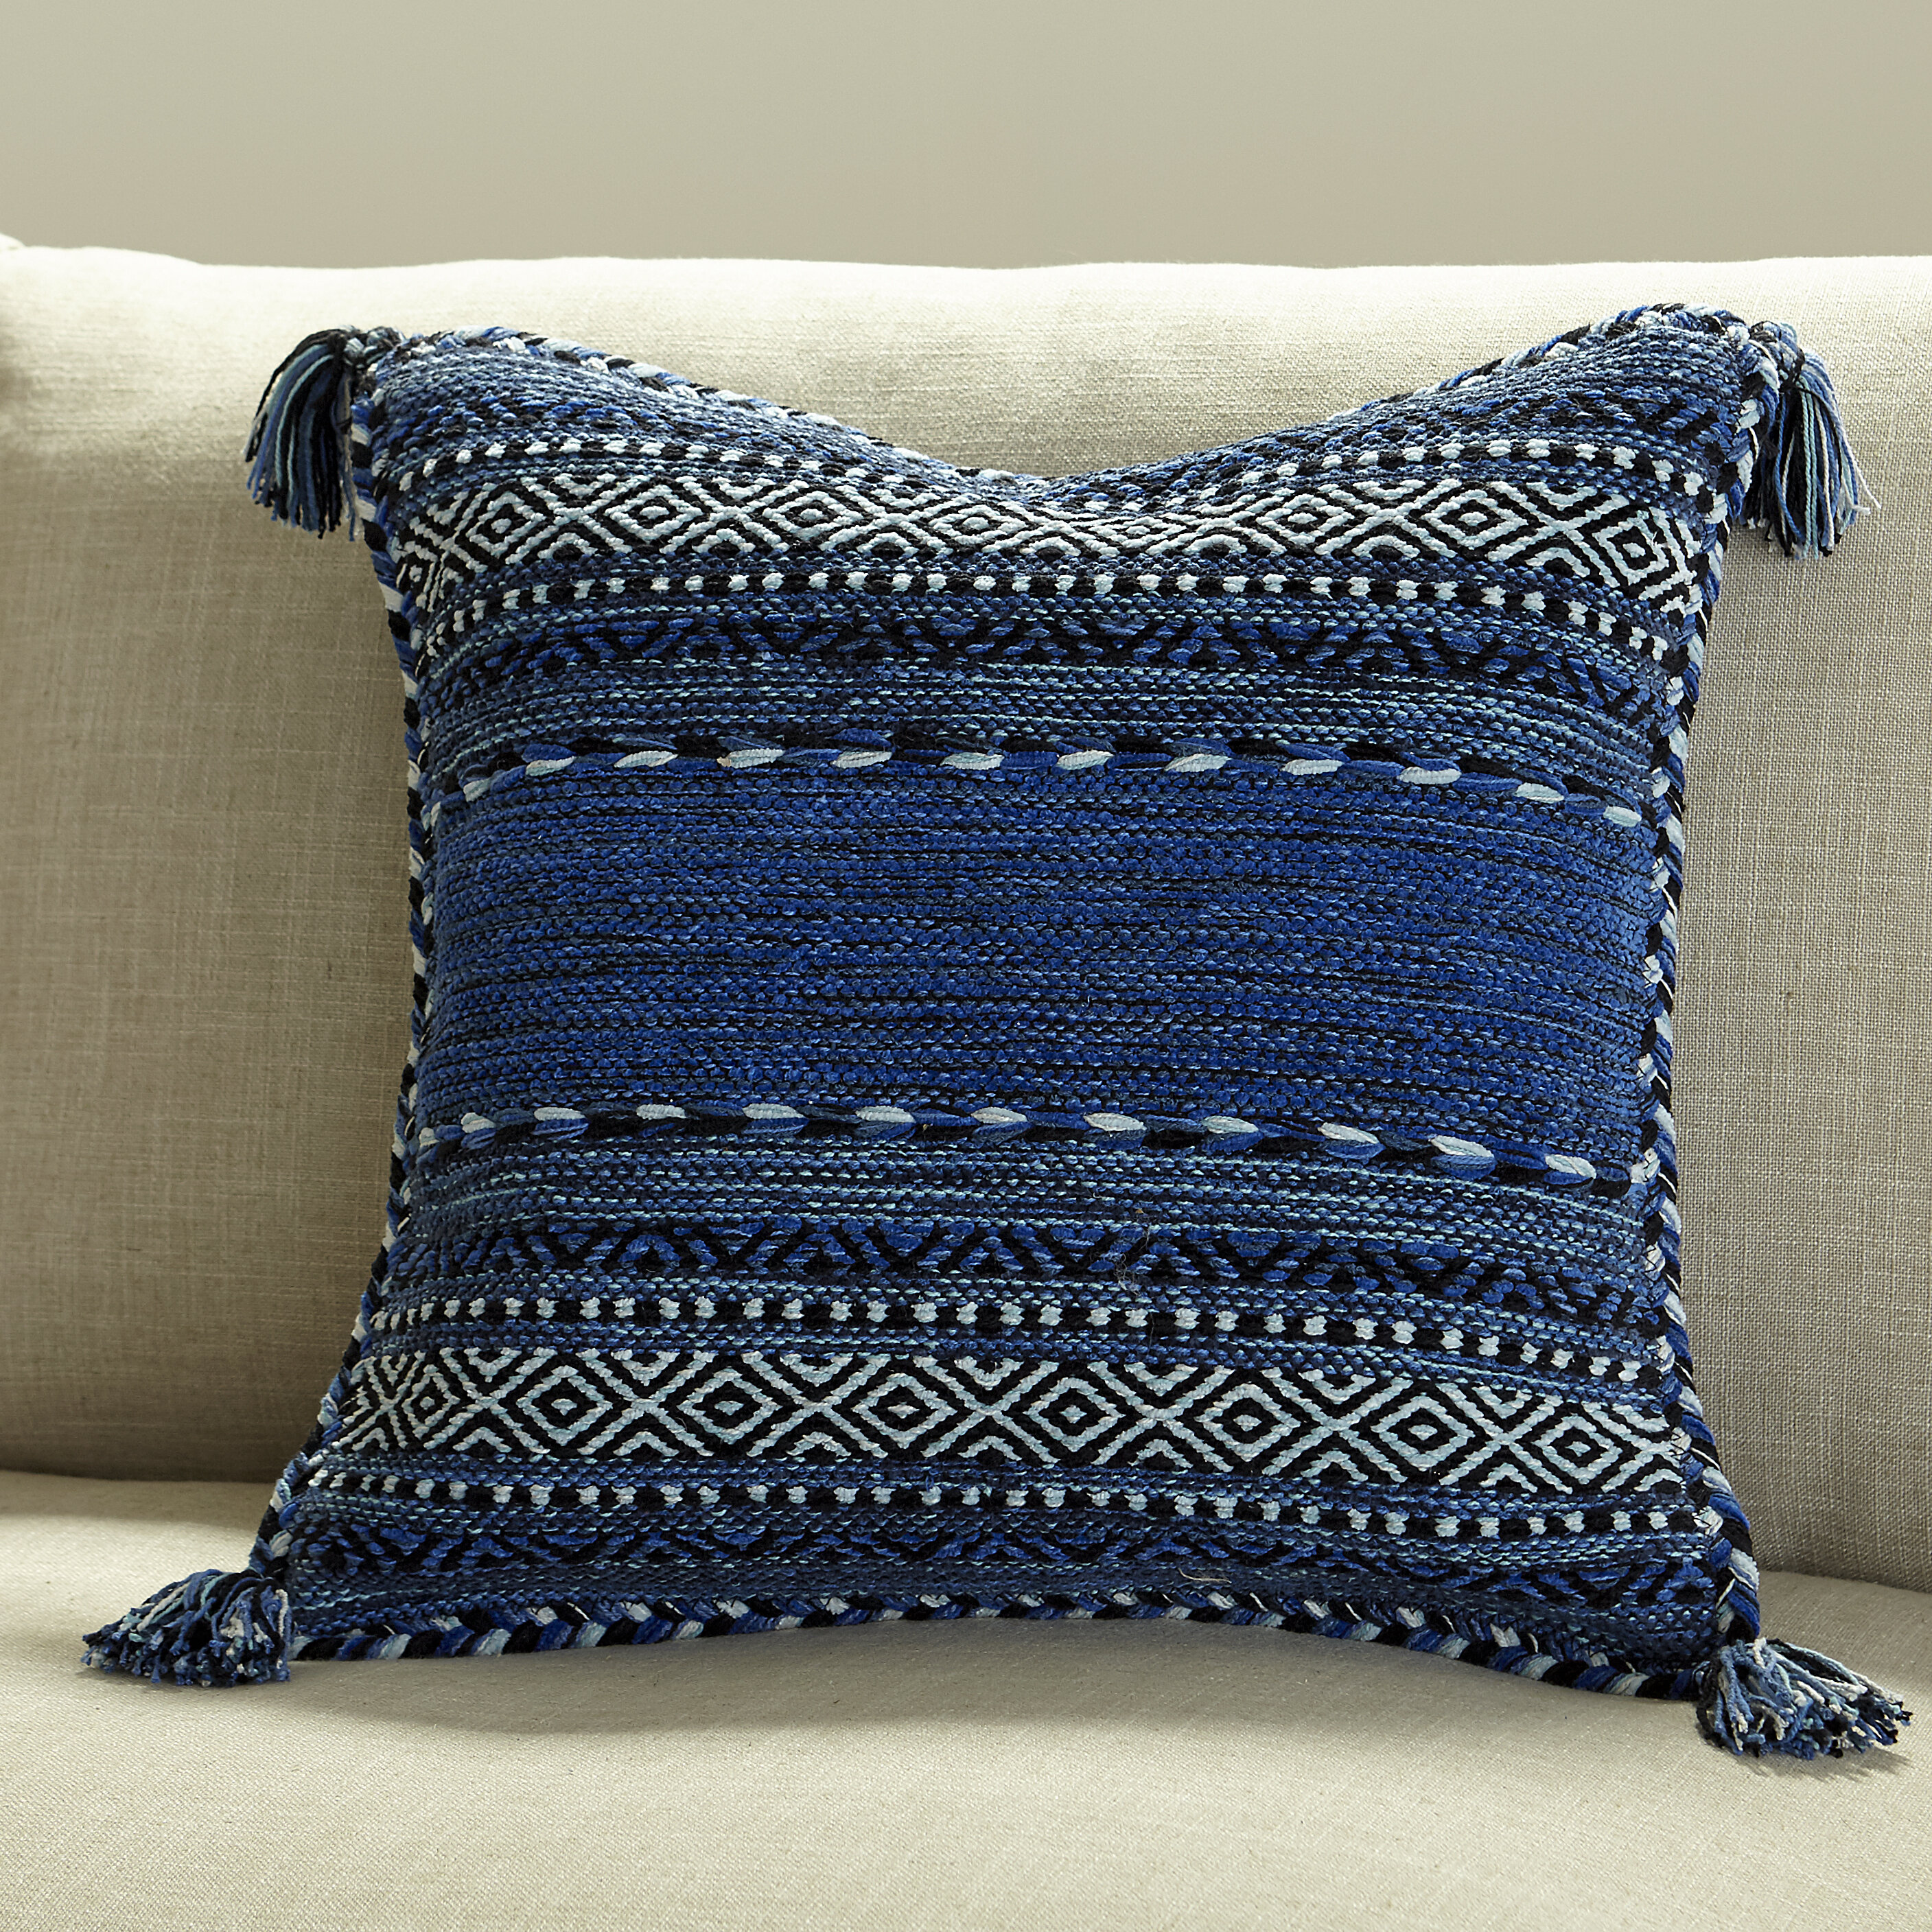 Blue Yellow And Gold Throw Pillows You Ll Love In 2021 Wayfair